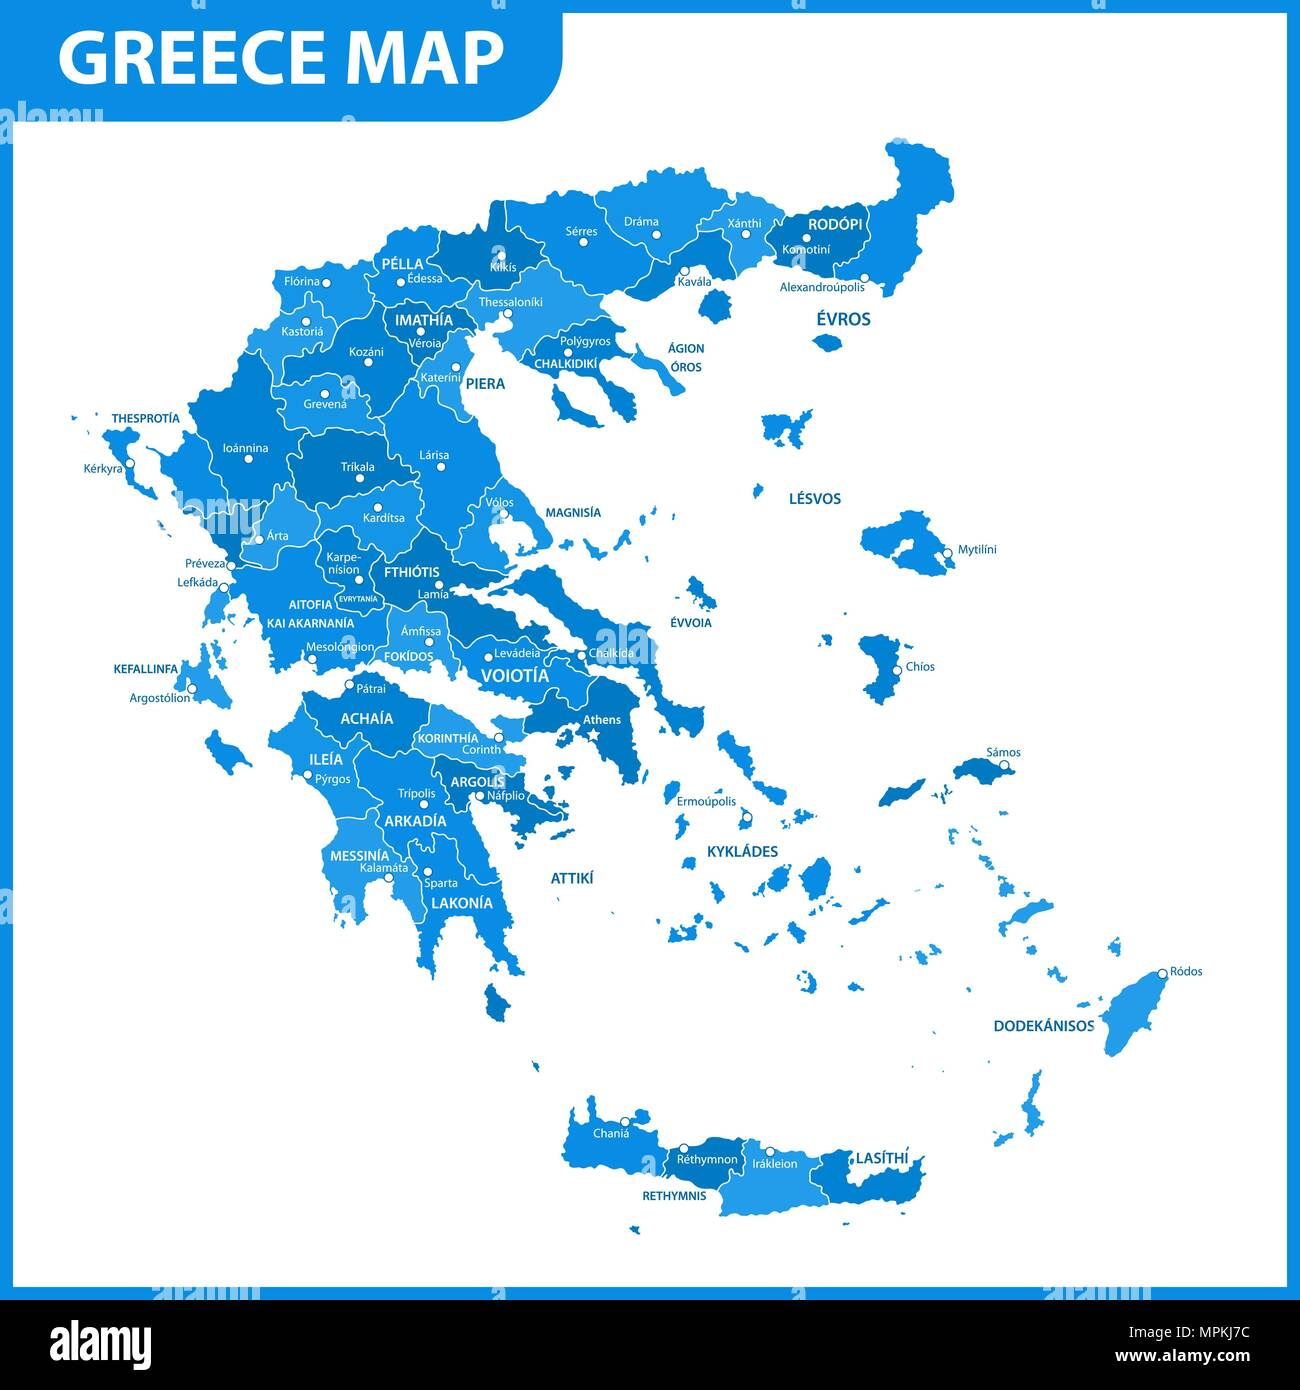 Karpathos Greece Map on ilia greece map, antikythera greece map, hersonissos greece map, chalcis greece map, grevena greece map, patrai greece map, serifos greece map, samothrace greece map, phocis greece map, istanbul greece map, troy greece map, kifisia greece map, aegean sea greece map, armenia greece map, ithaka greece map, karystos greece map, livadia greece map, karpenisi greece map, lipsi greece map, kalavryta greece map,